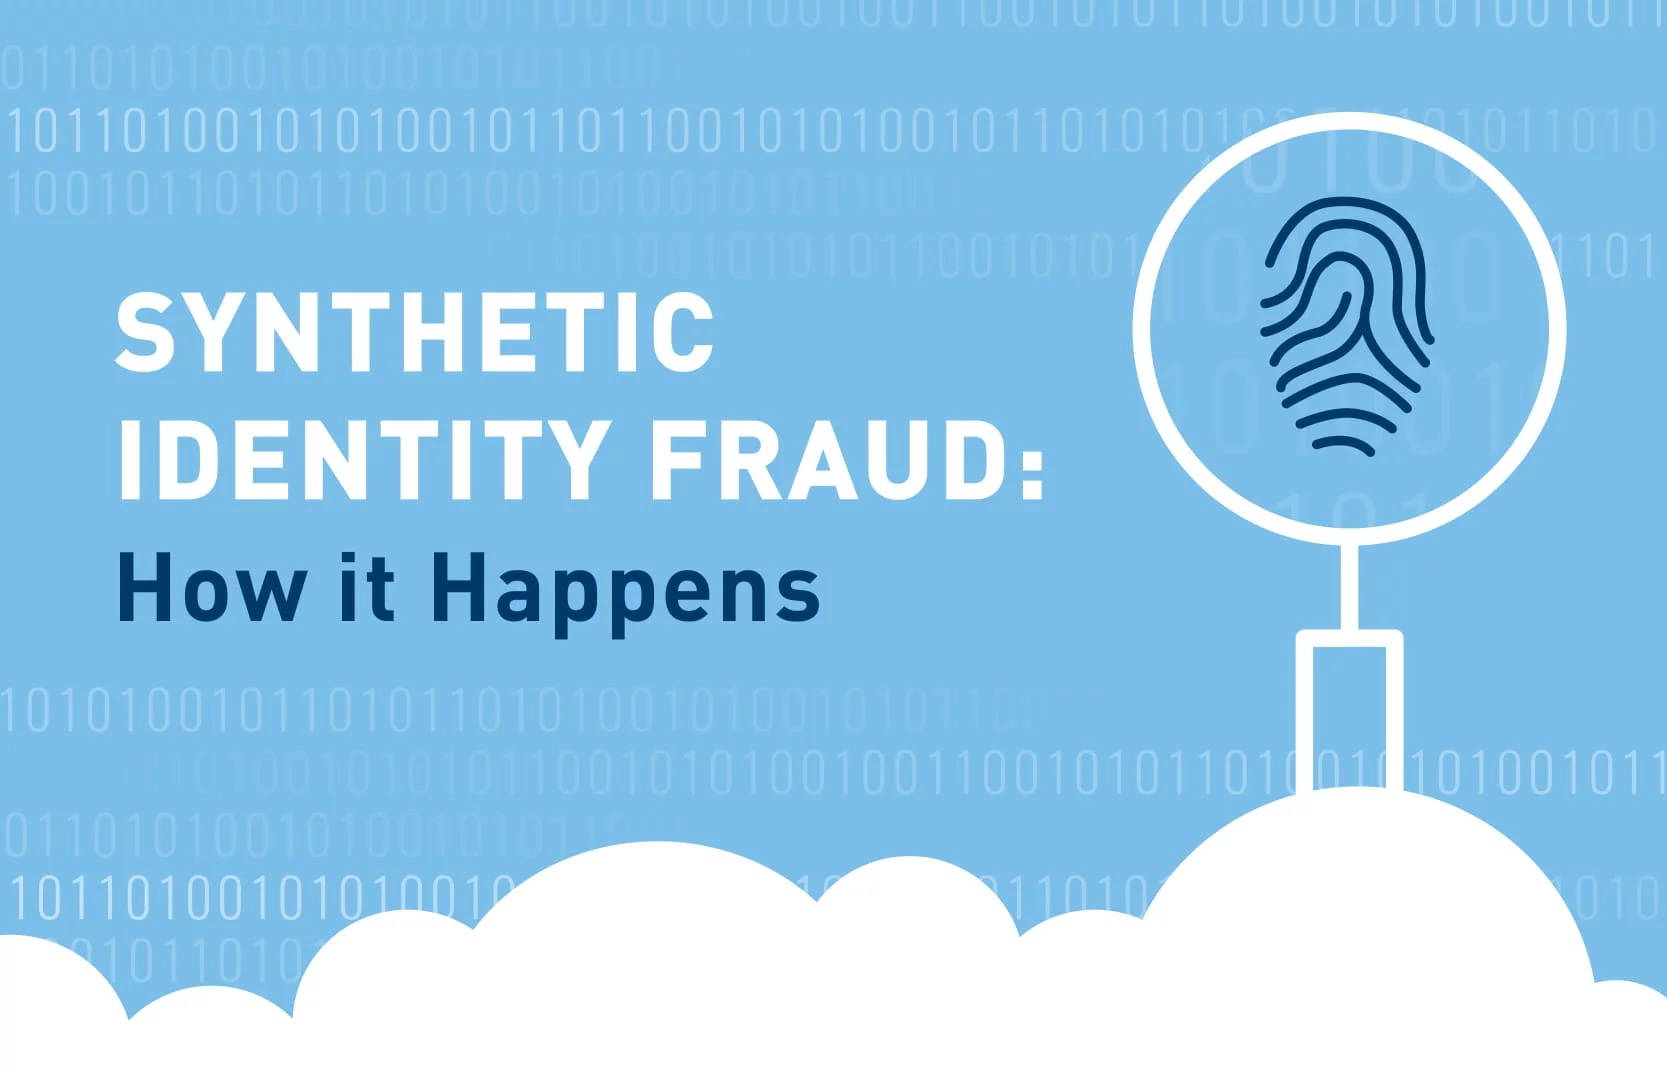 How Synthetic Identity Fraud Happens